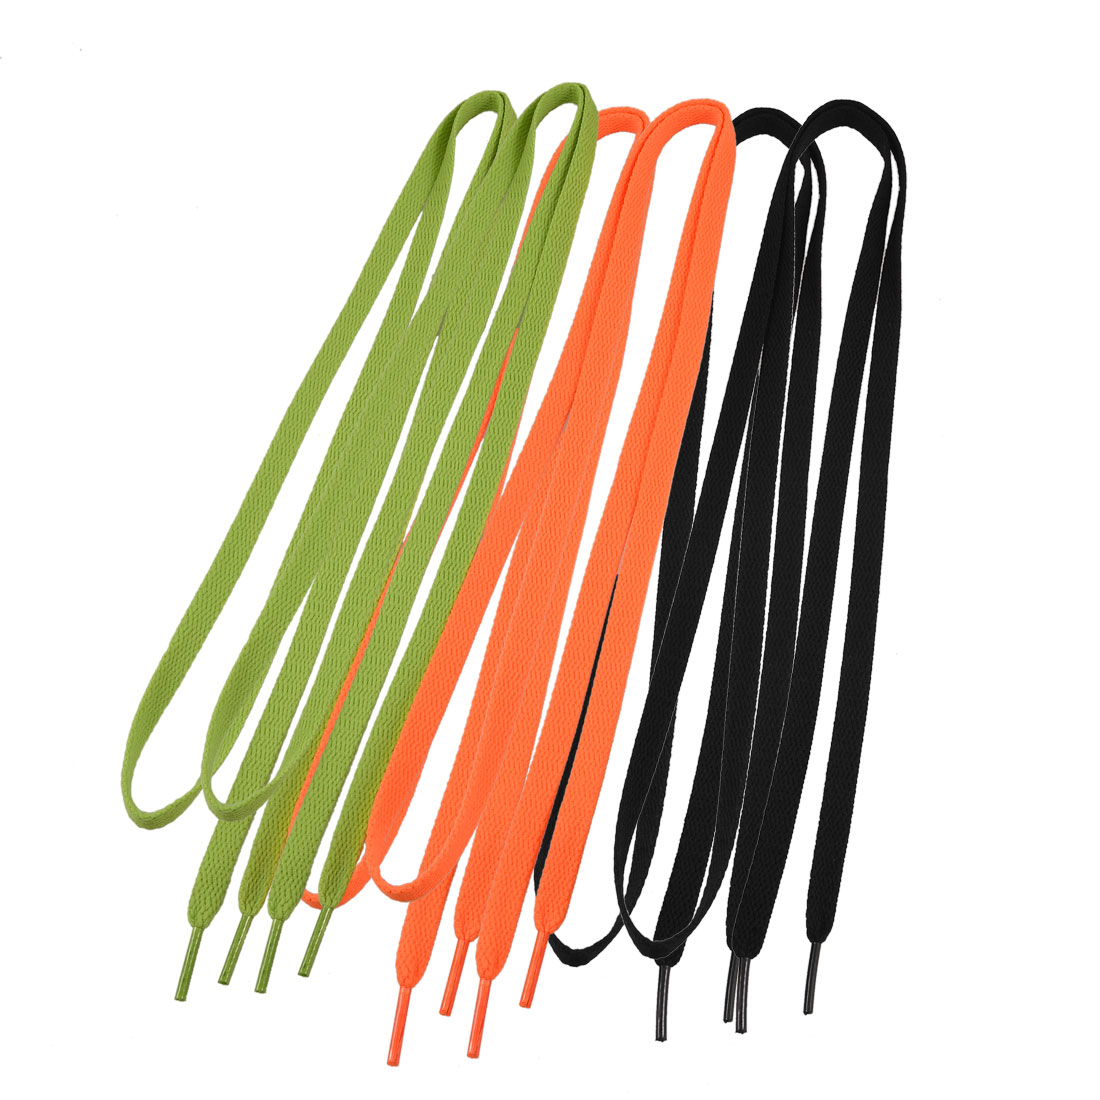 "3 Pairs Colored Flat Strings 0.35"" Wide Shoelaces for Sports Shoes"